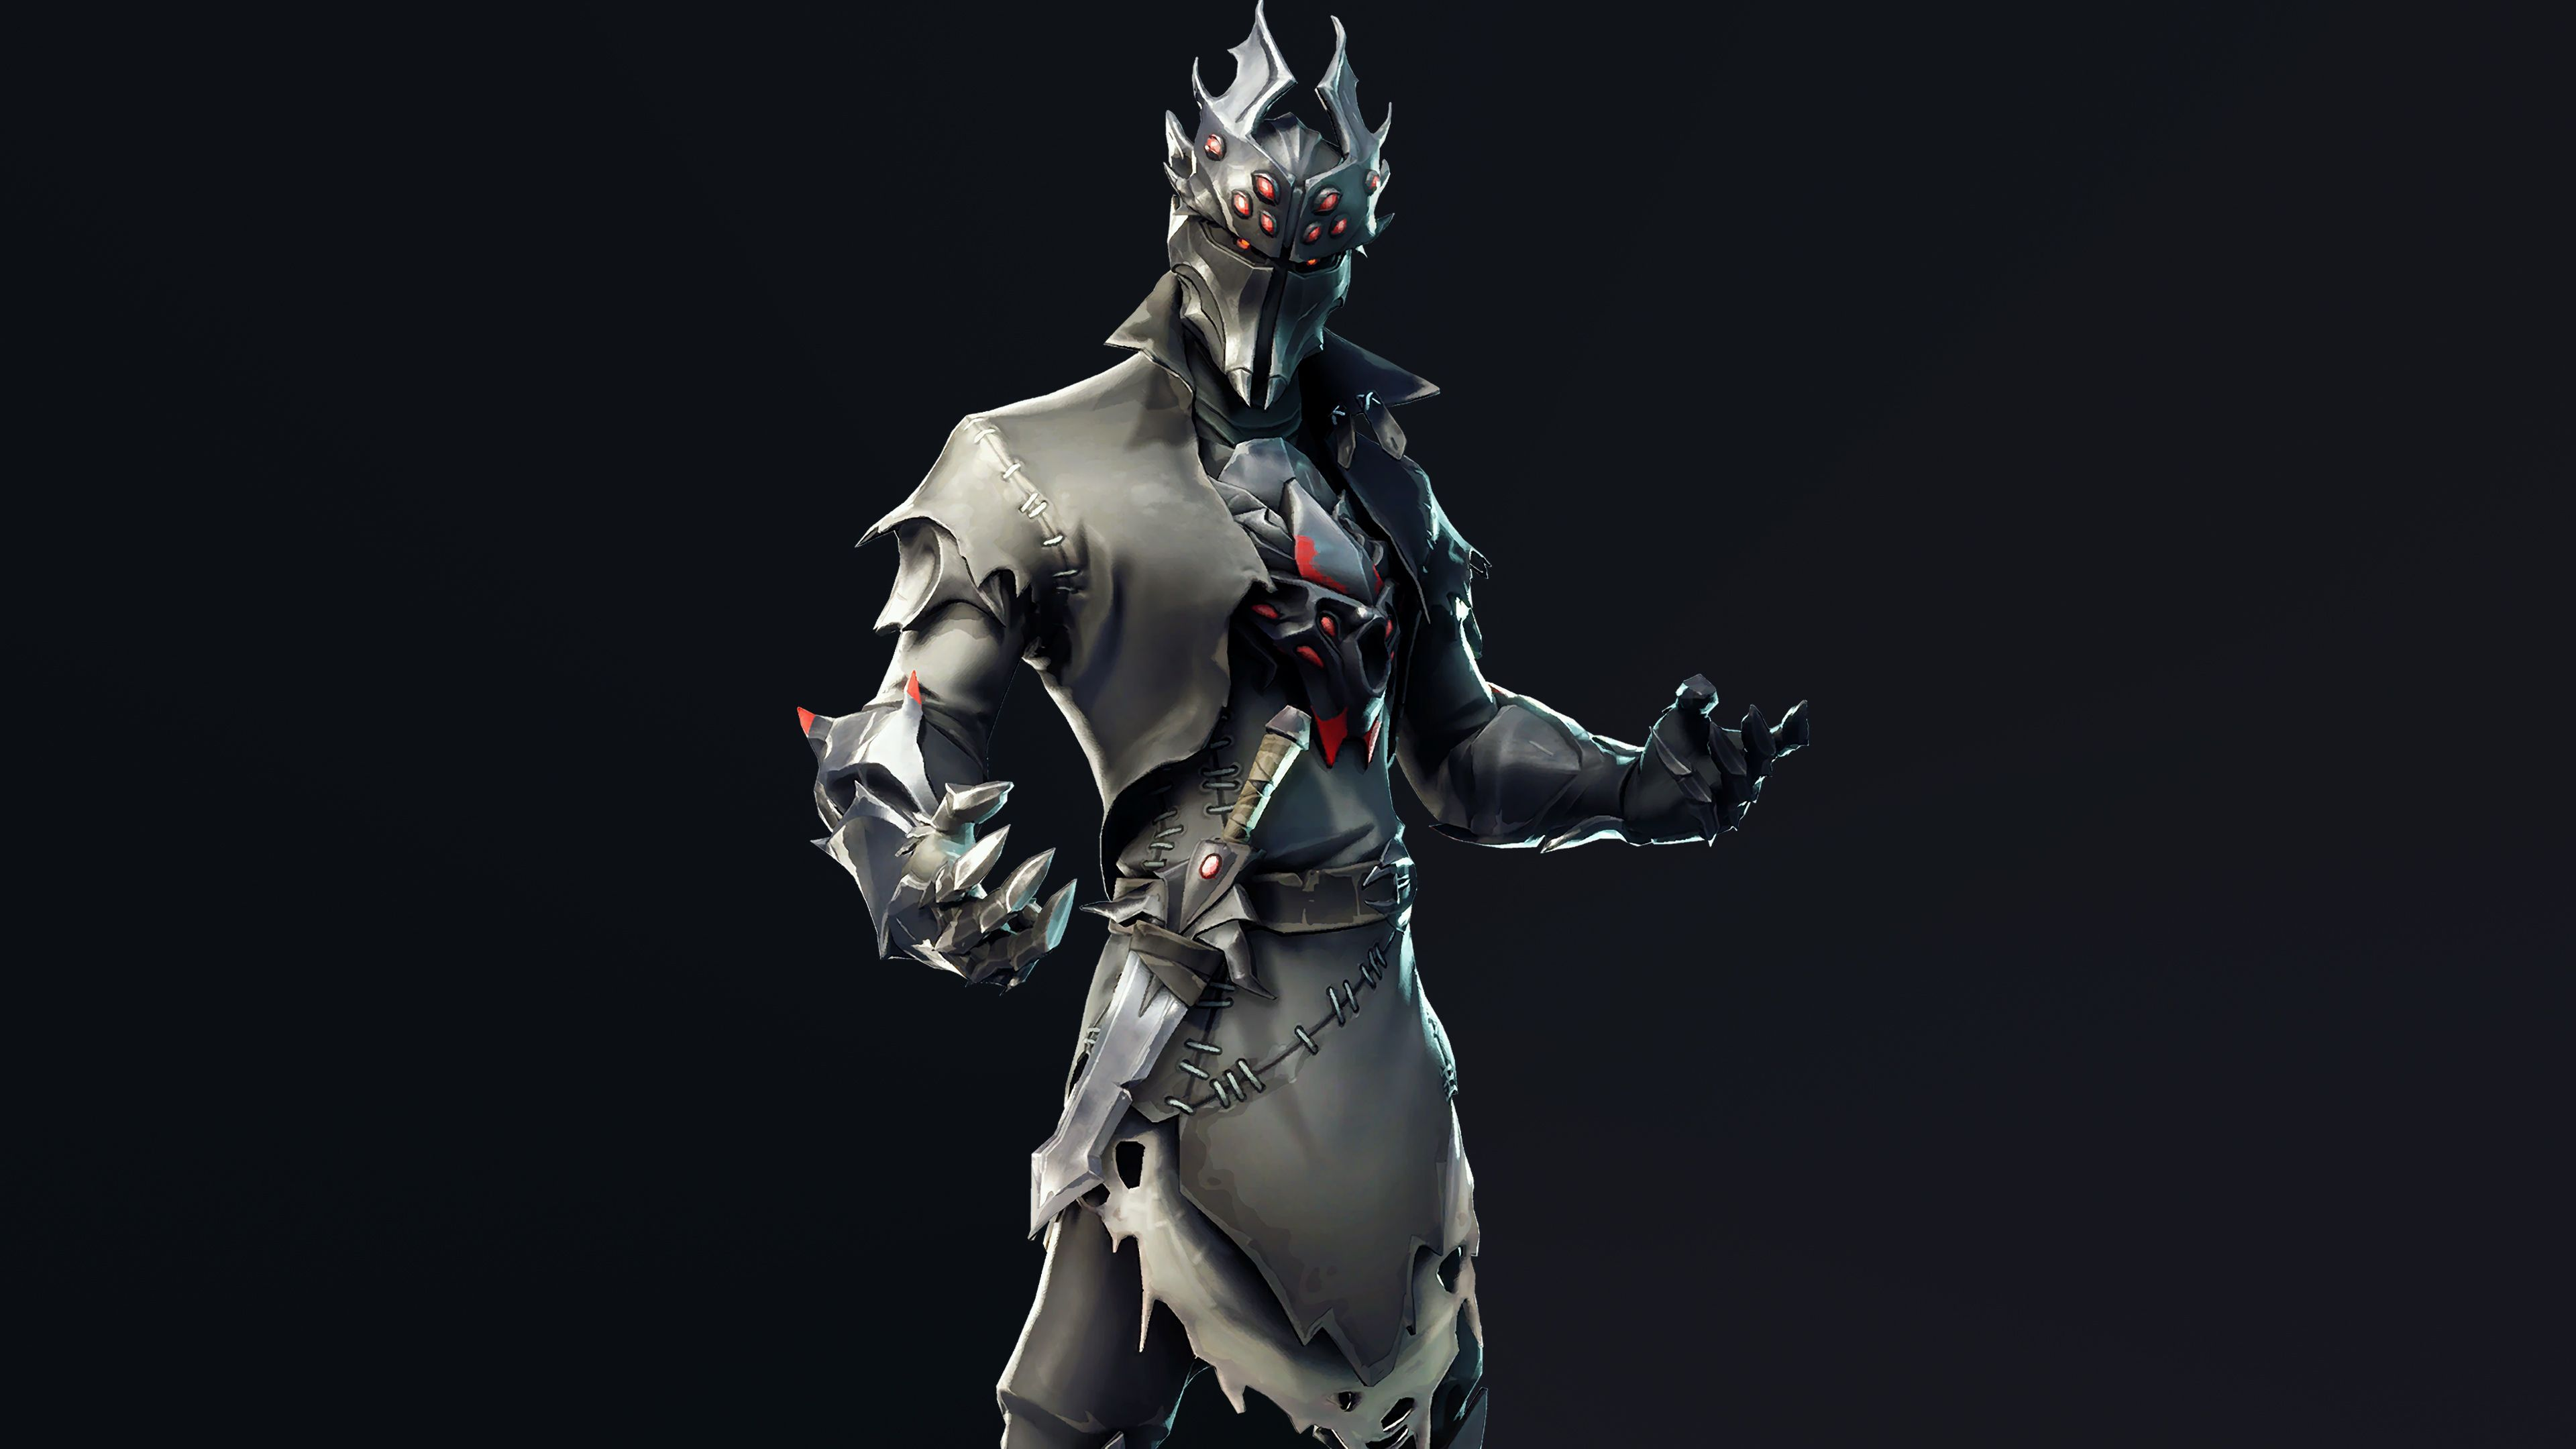 Fortnite Skins Wallpaper Spider Knight Fortnite Wallpaper